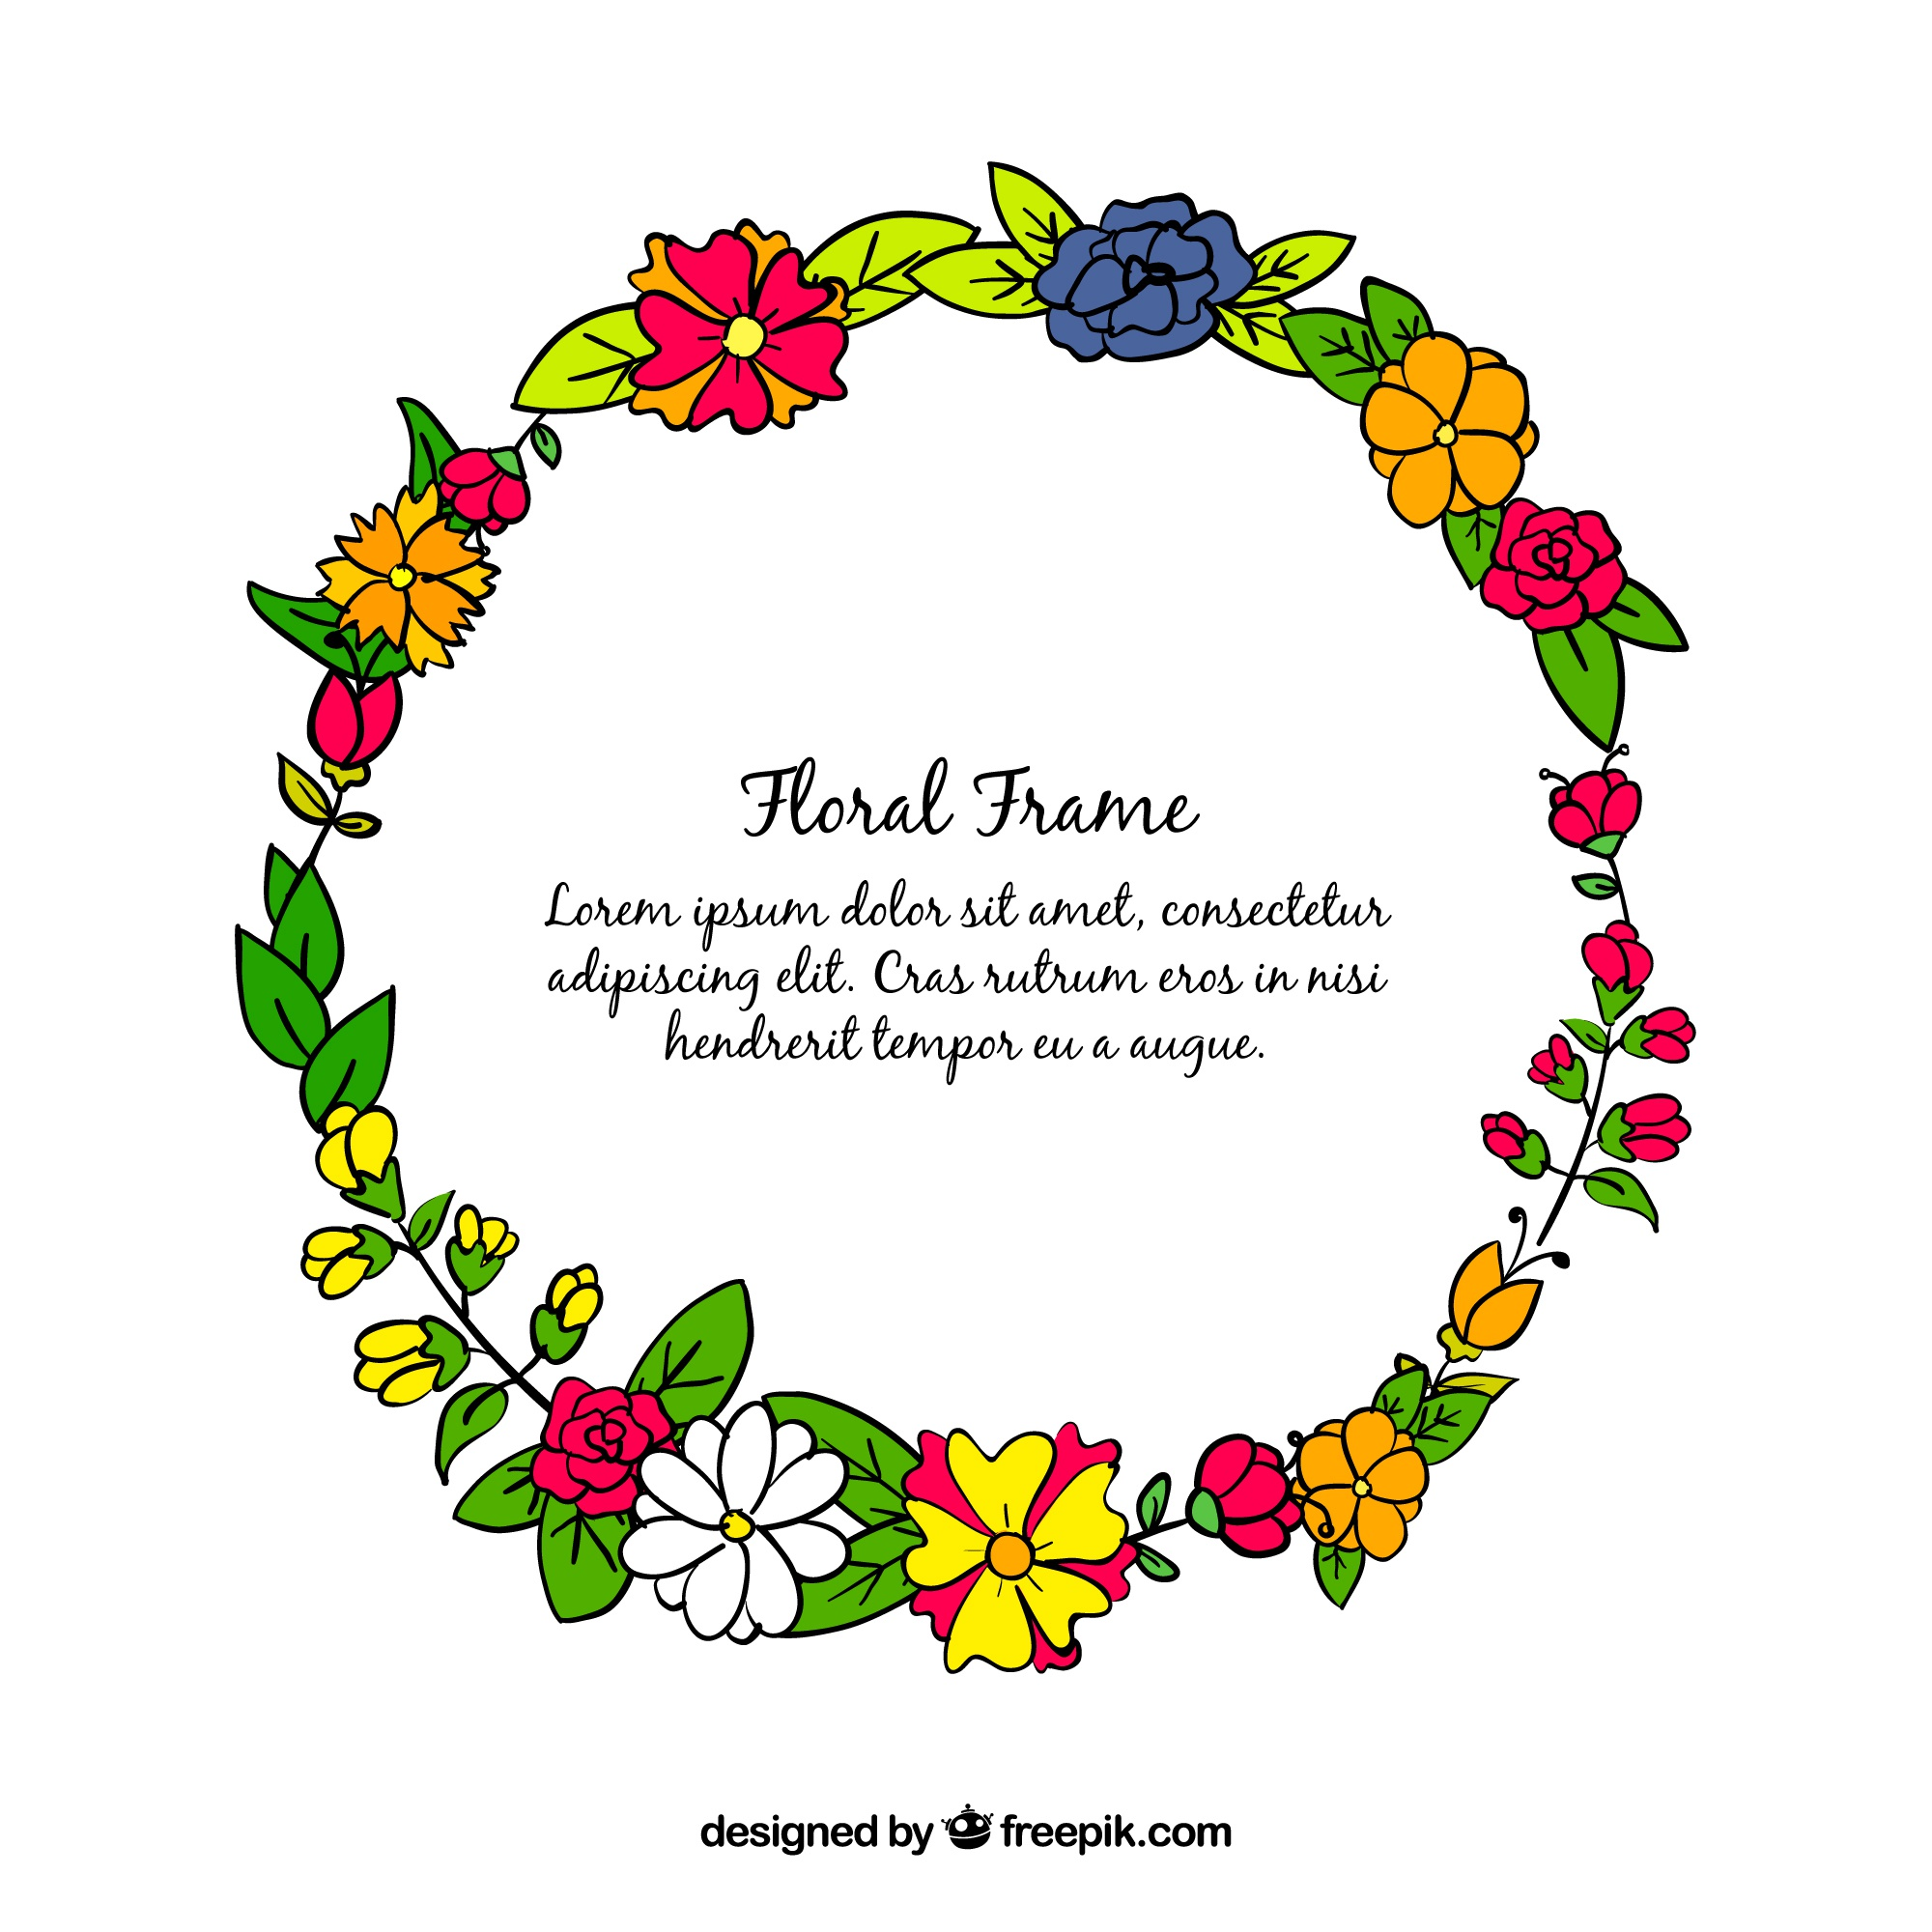 Drawn floral frame, circular shape